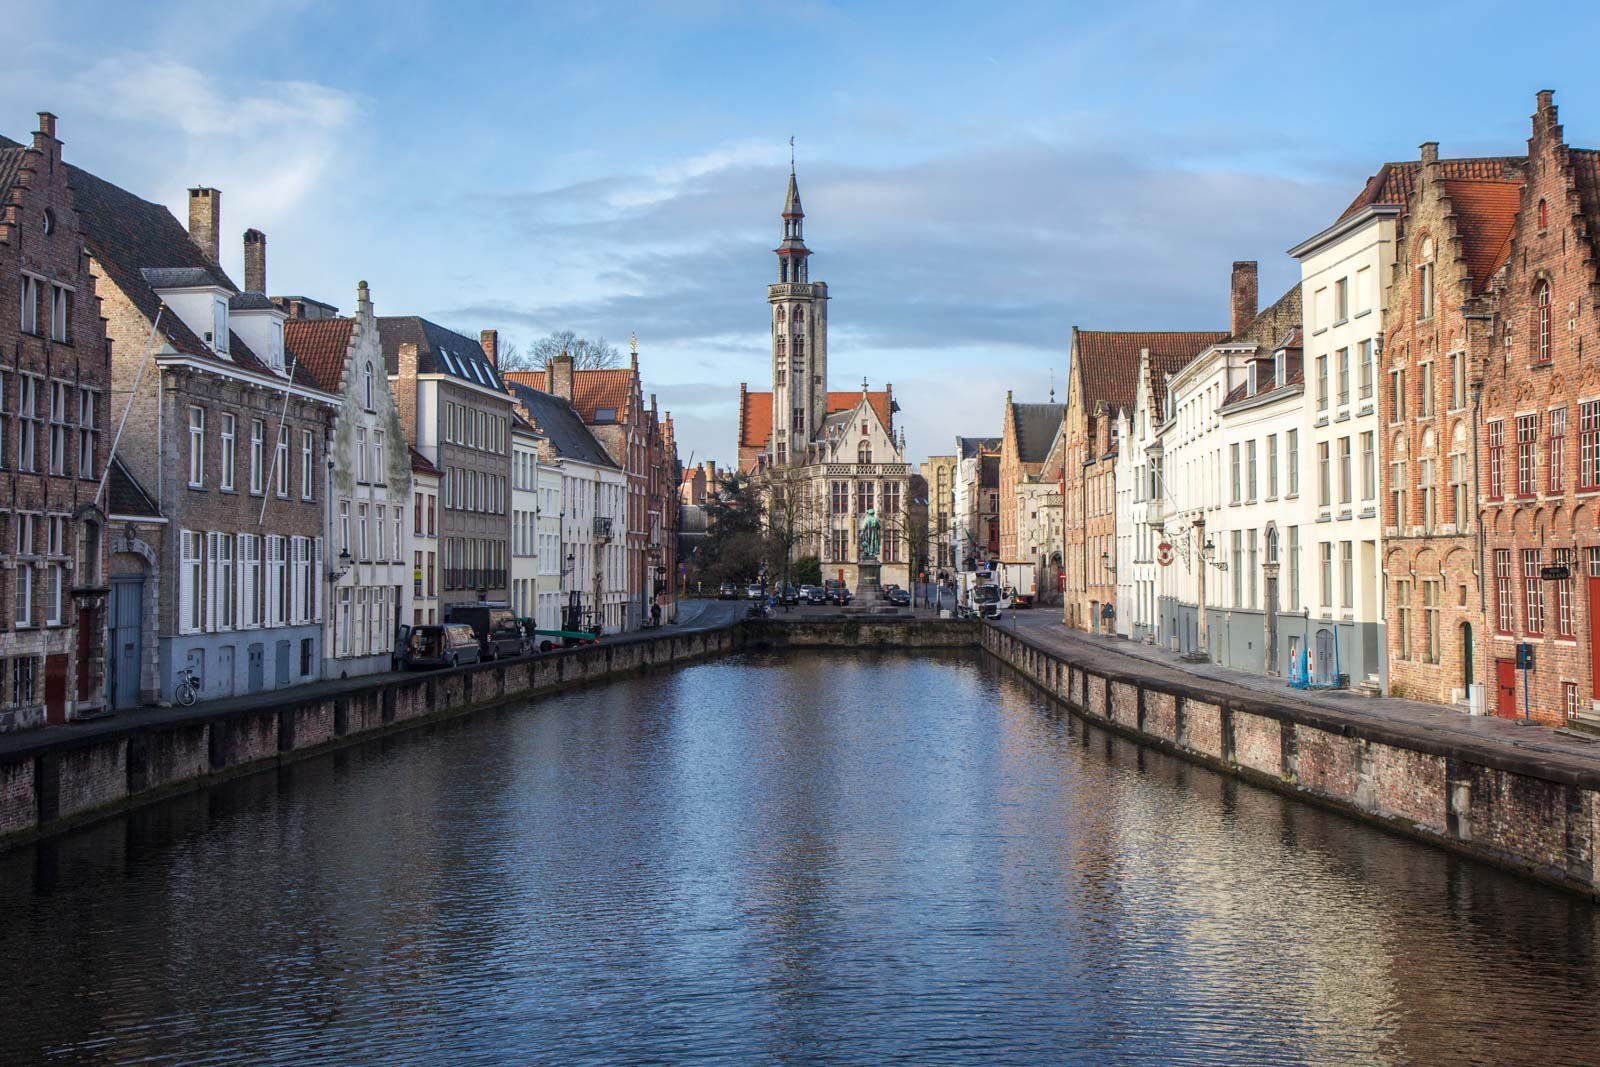 Historic centre of Bruges, Belgium